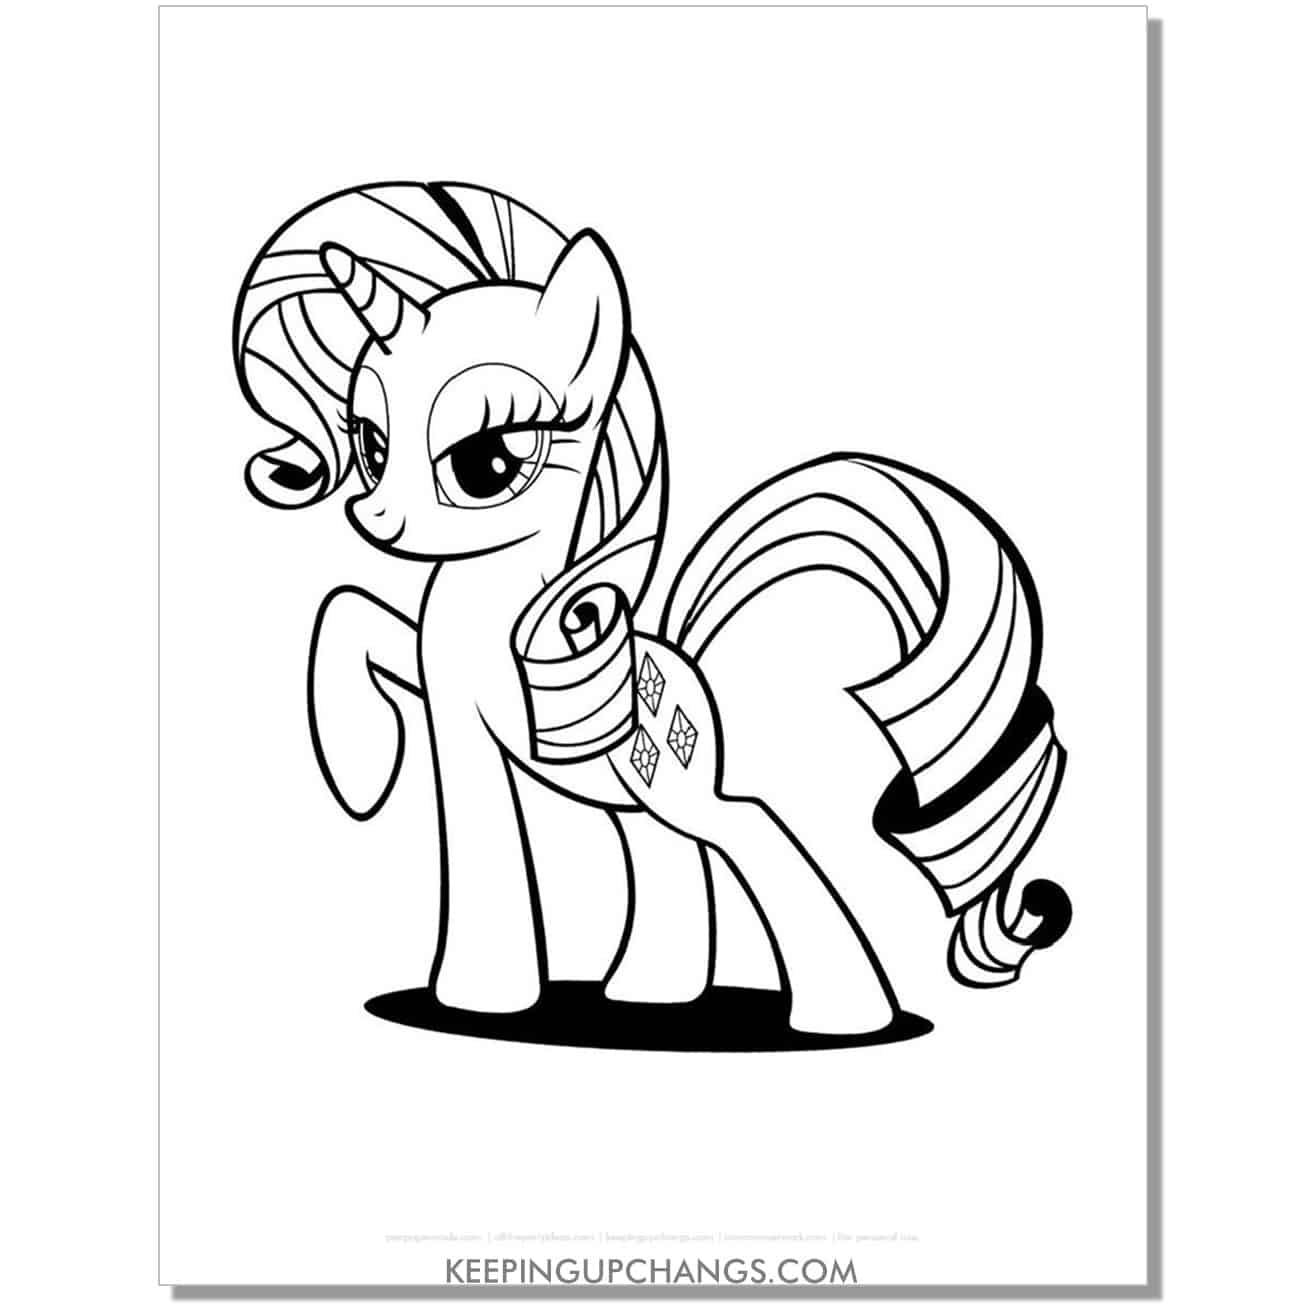 free diamond cutie mark my little pony coloring page.